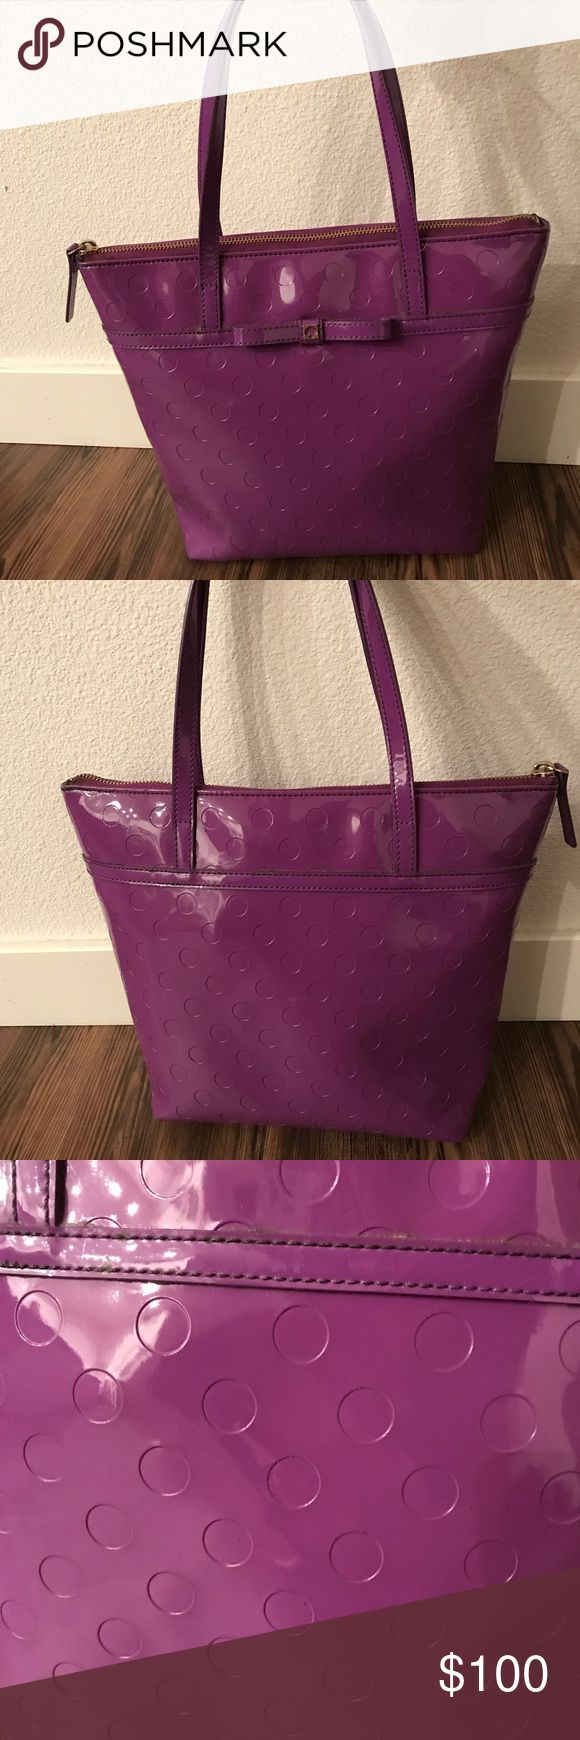 Kate Spade Purple Tote Bag -Kate Spade -Purple tote bag -Super cute, fun color for spring!  -2 small stains on inside of purse as shown in pics, but the outside of purse is in perfect condition! kate spade Bags Totes